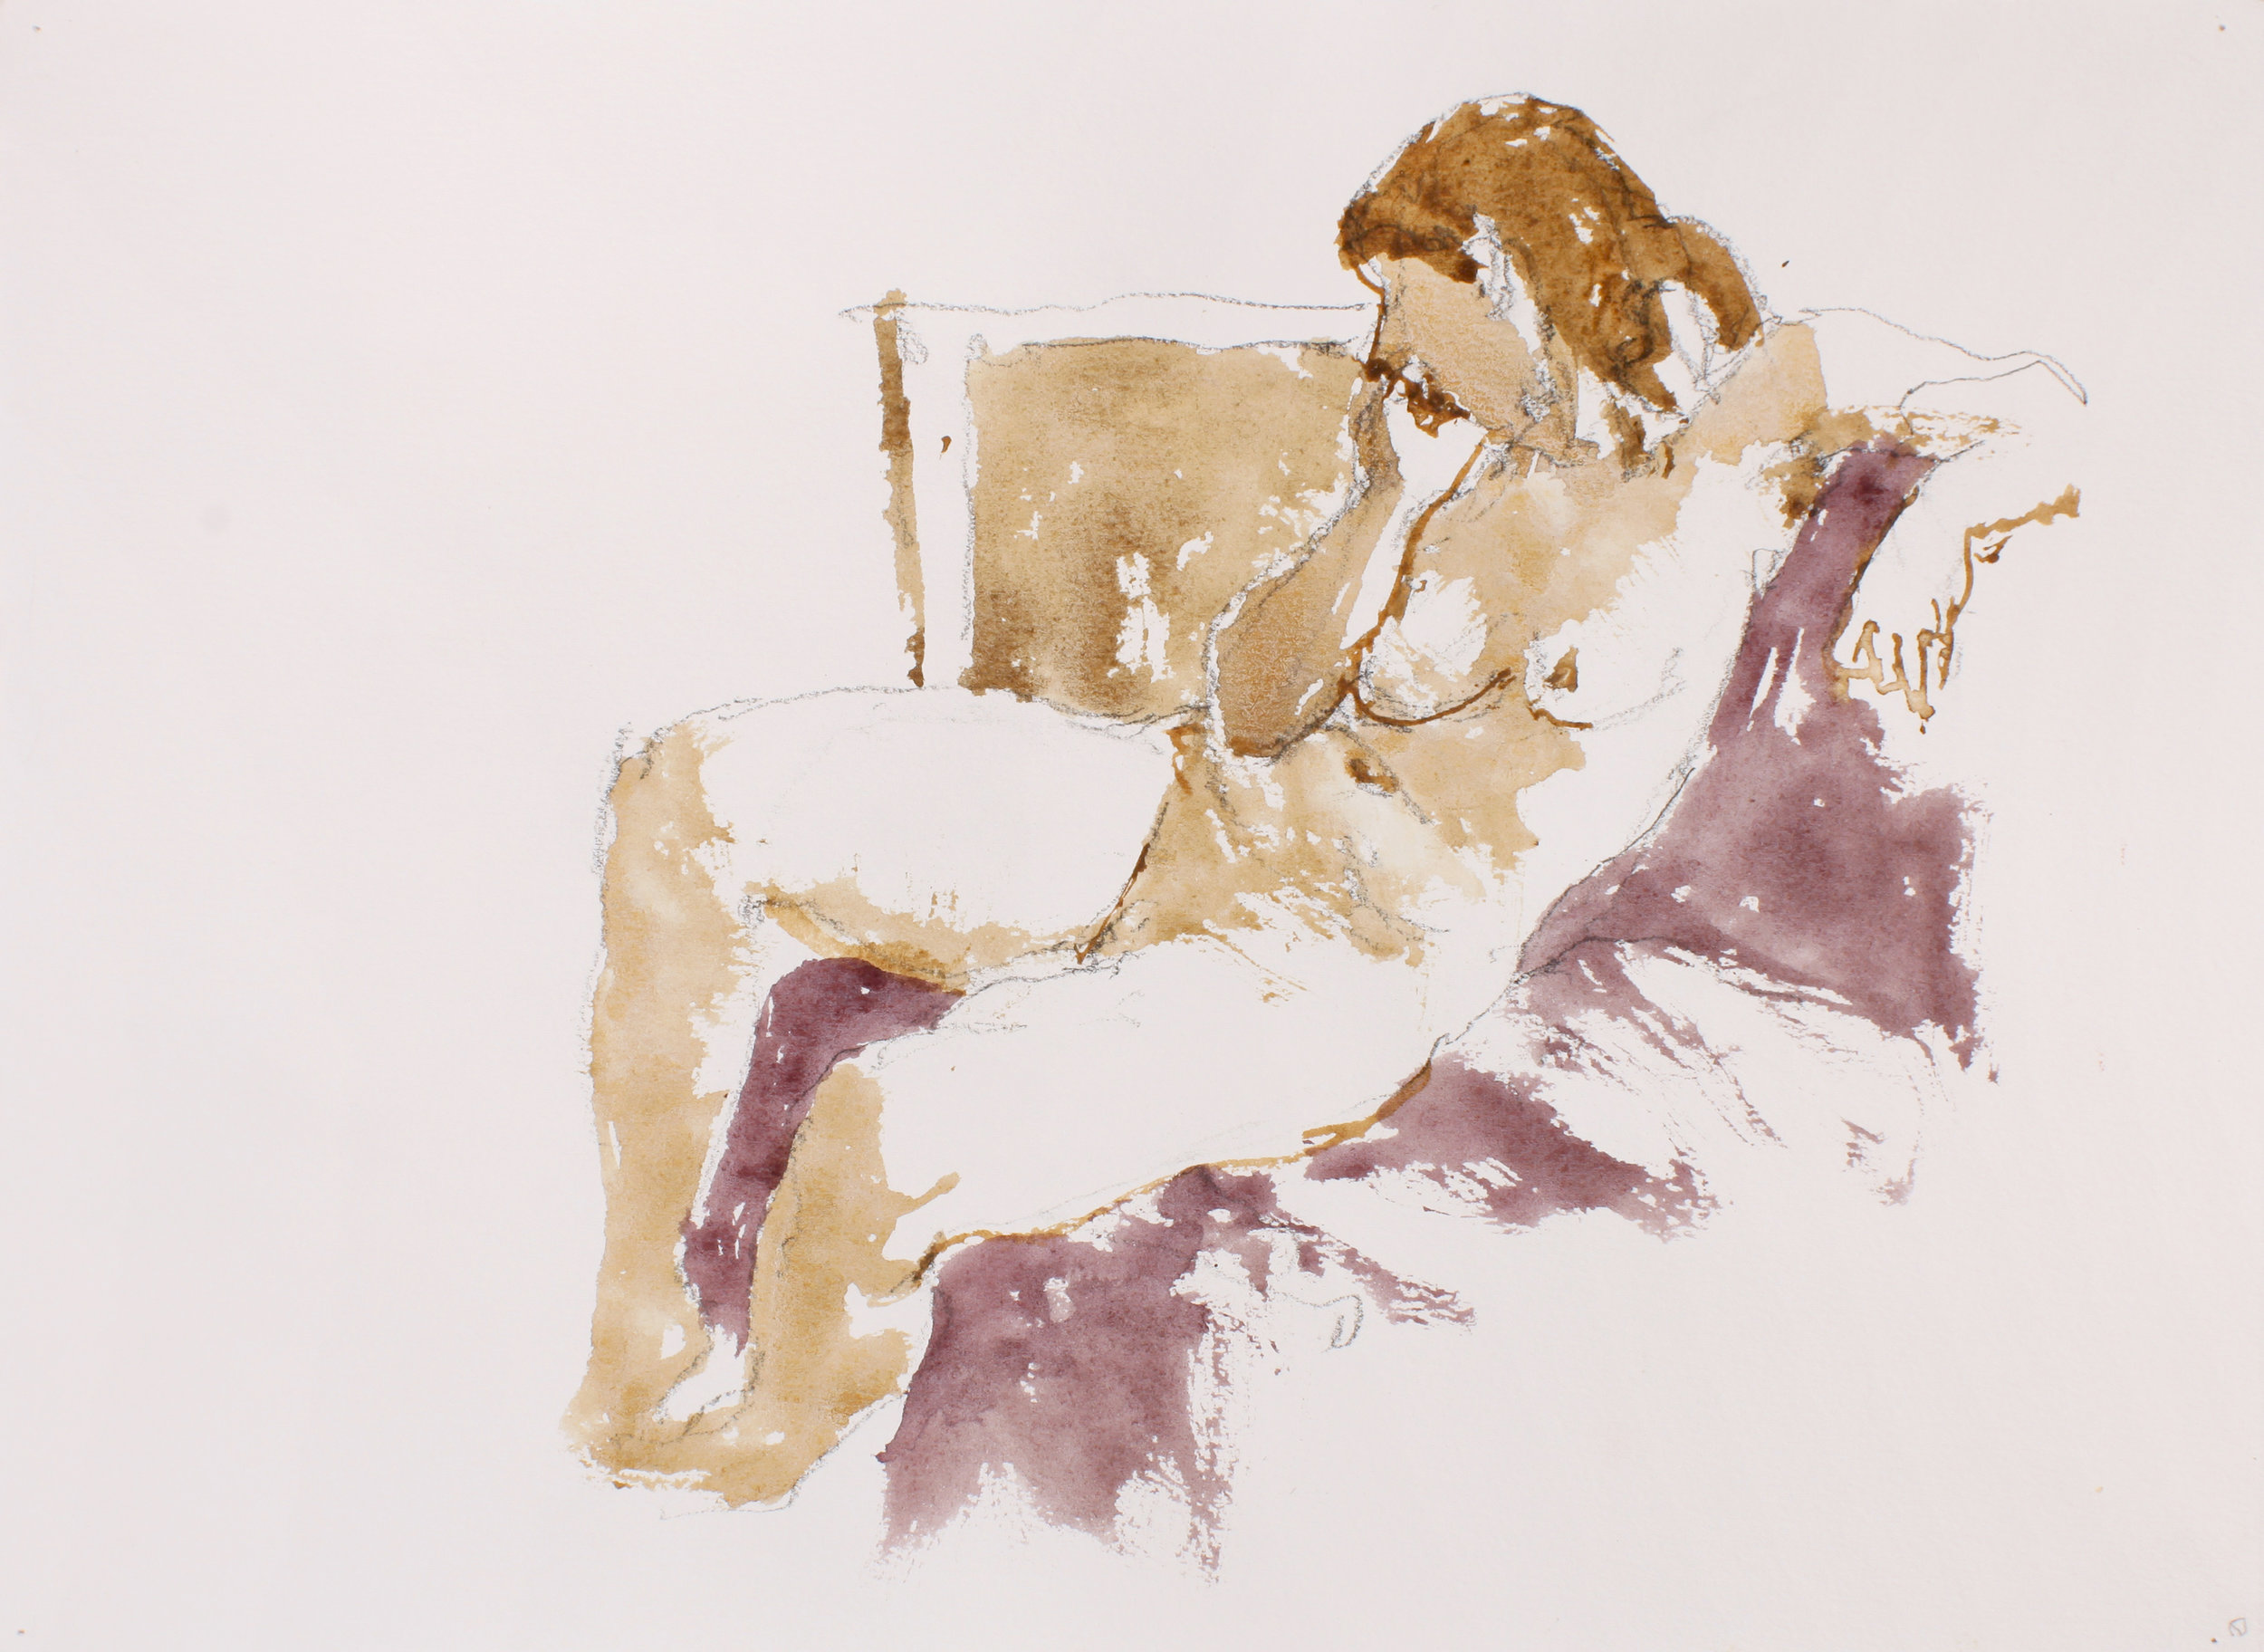 2006_Seated_Nude_on_MauveCloth_watercolour_and_pencil_on_paper_11x15in_28x38cm_WPF054.jpg